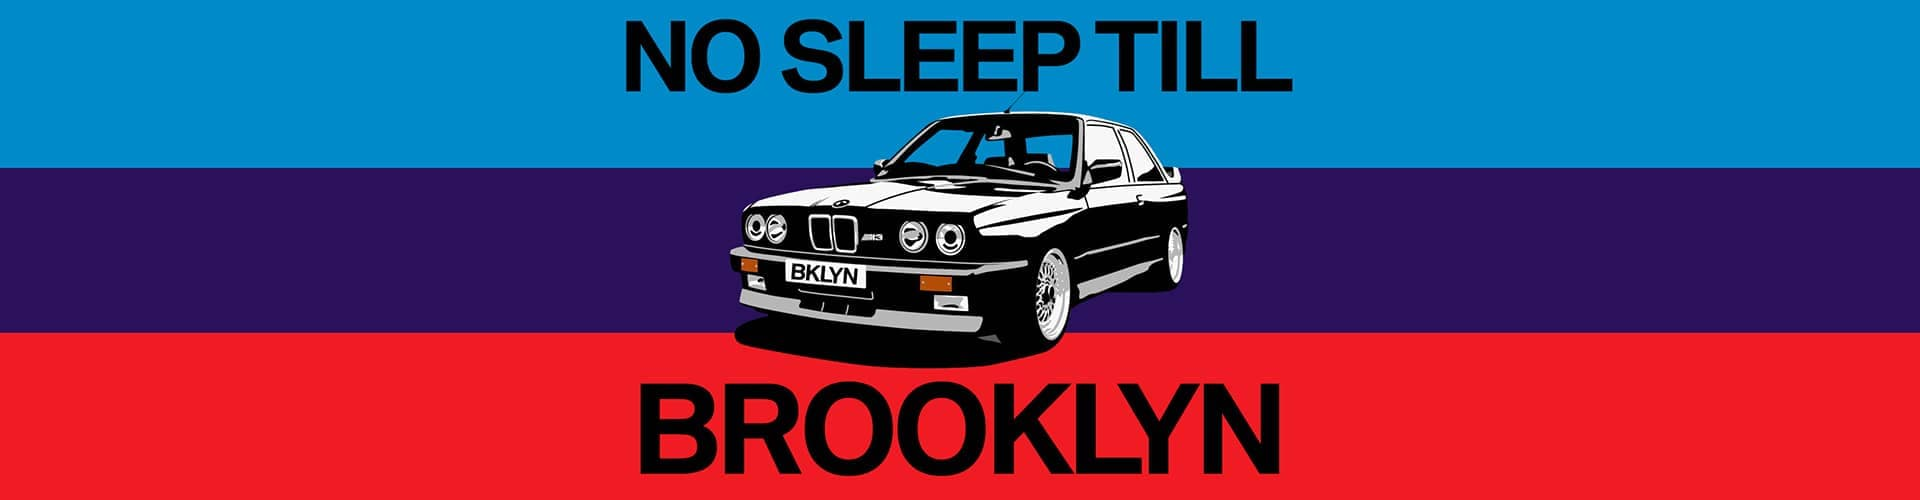 No Sleep Til Brooklyn